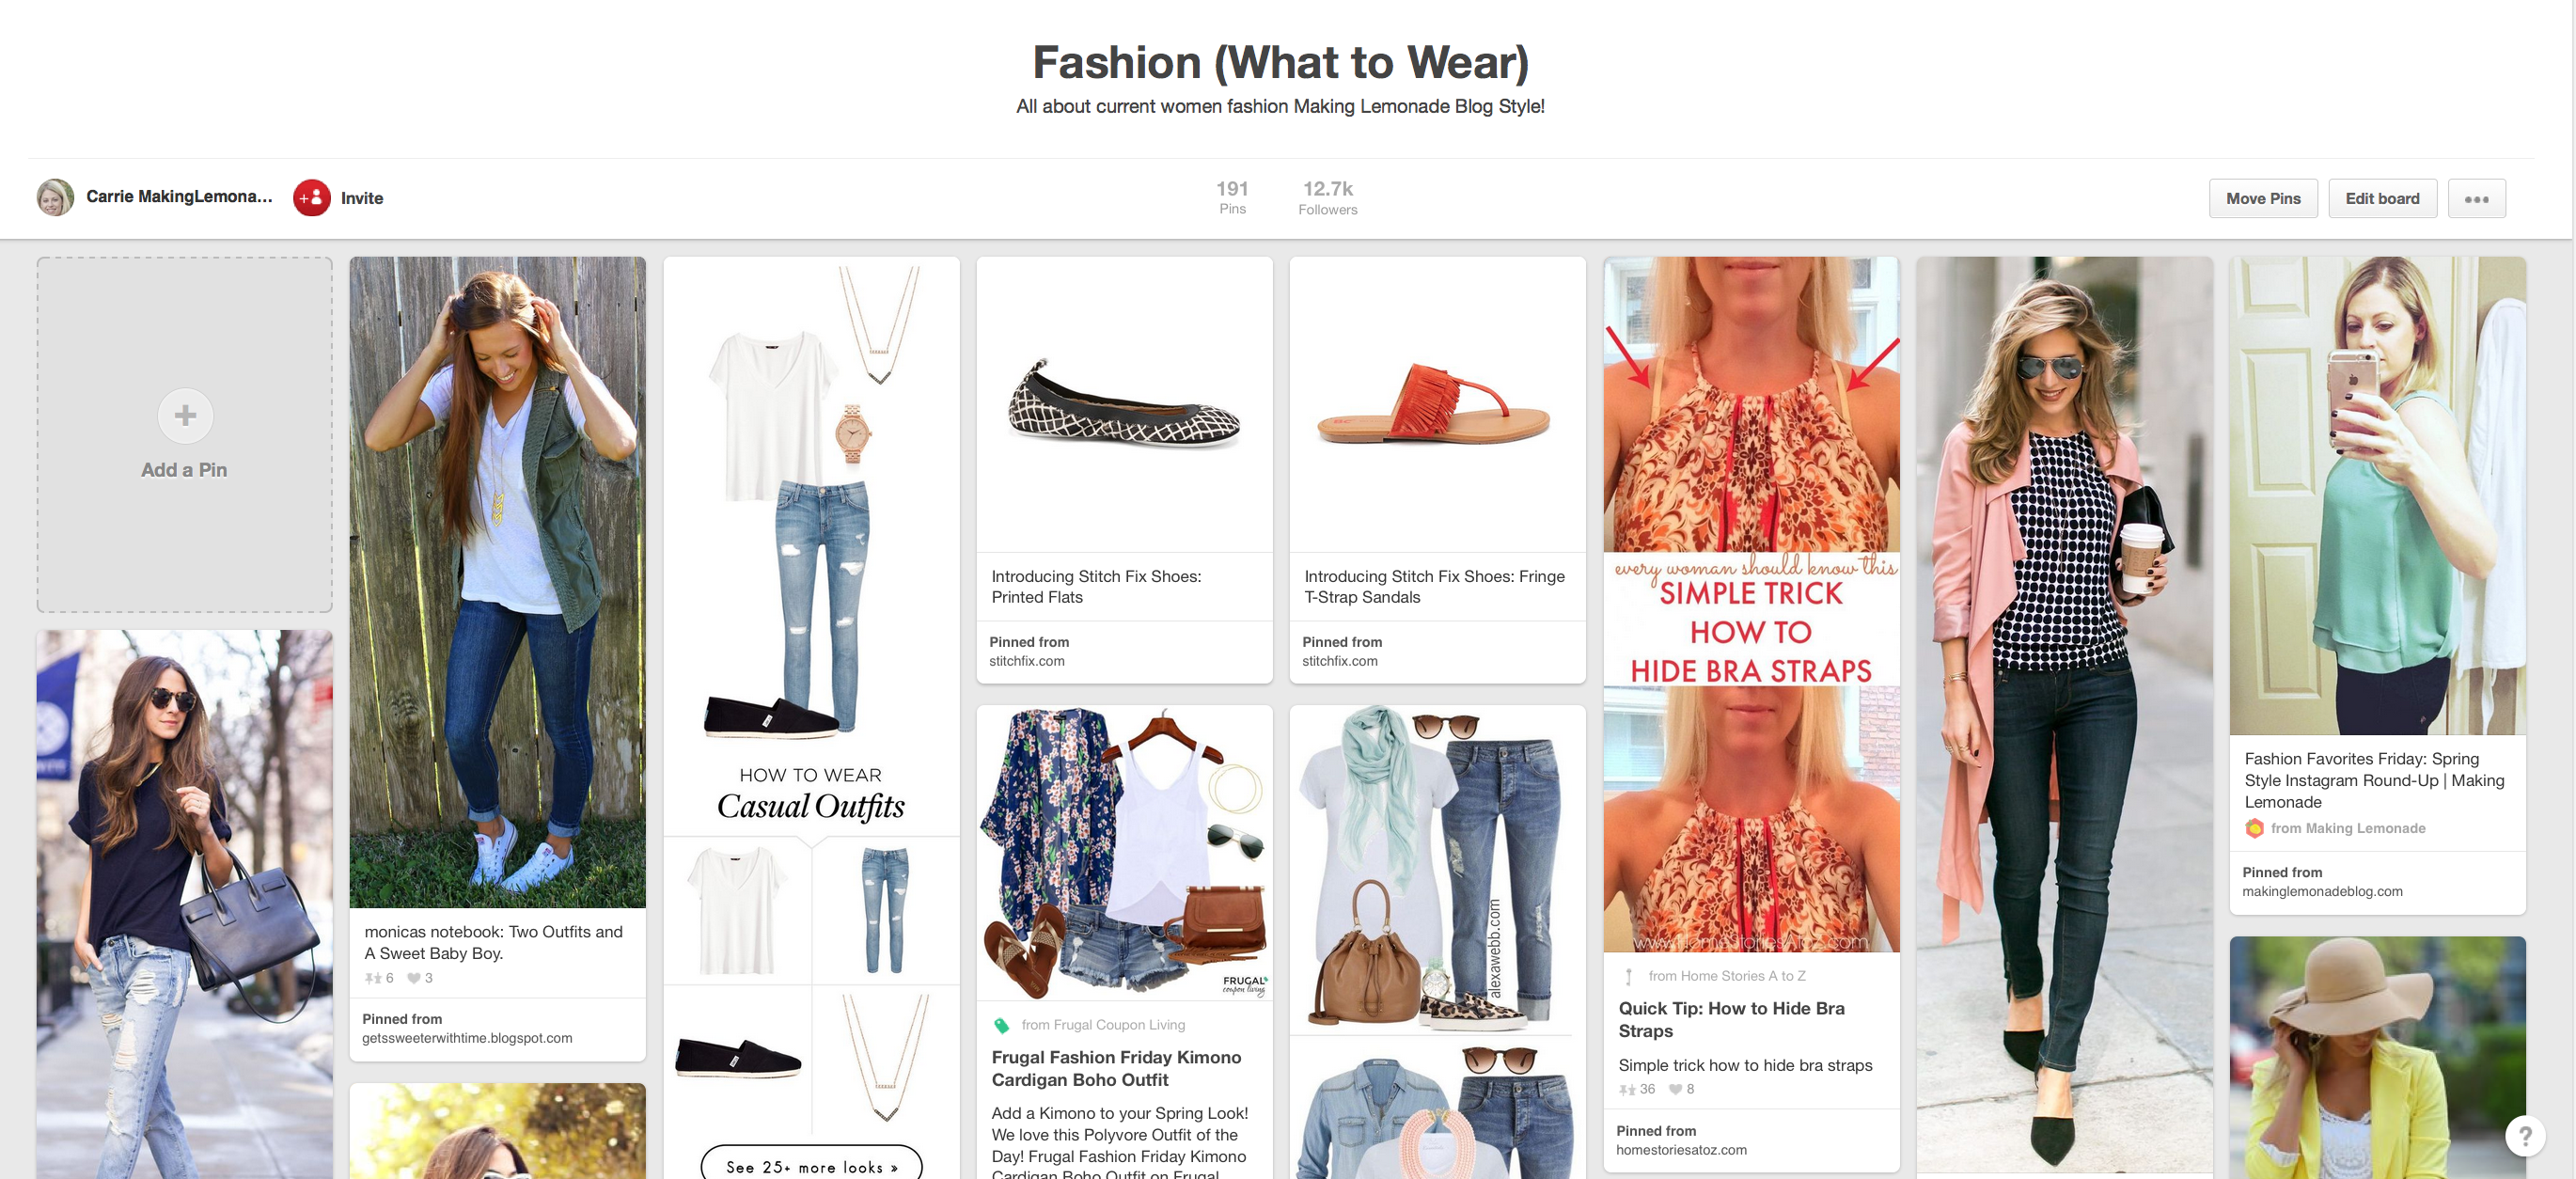 95f910763a1 I'm totally doing this-- a personal stylist selects clothing based on your